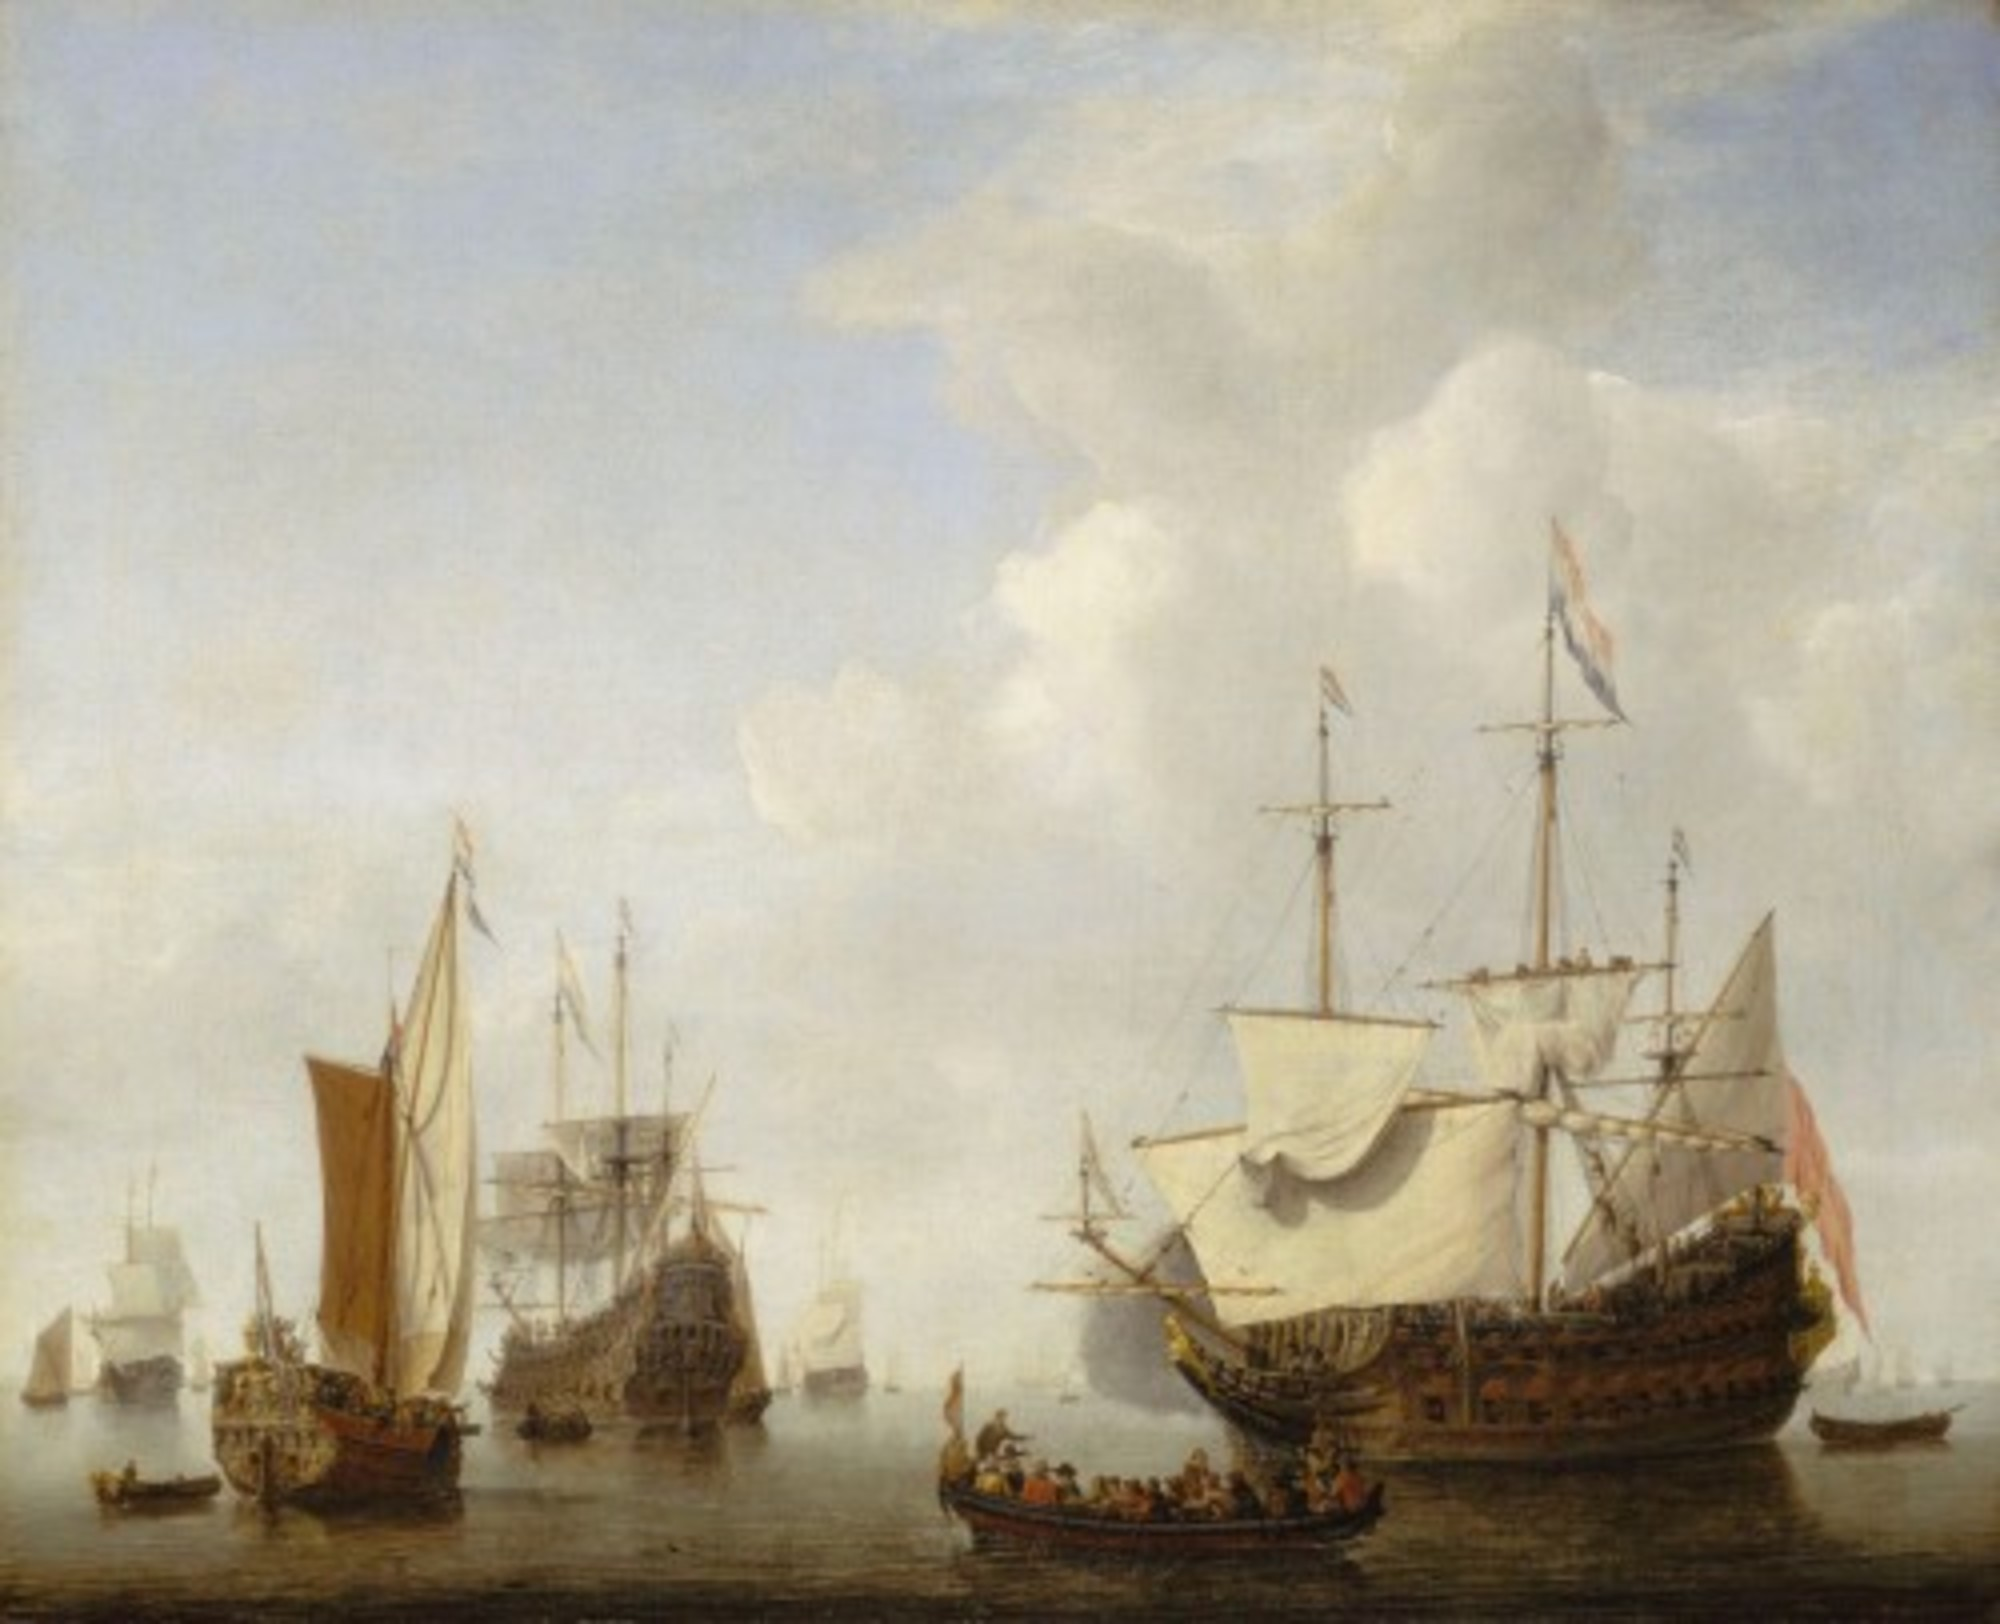 Willem-van-de-Velde-the-Younger---A-Dutch-Flagship-Coming-to-Anchor-with-a-States-Yacht-Before-a-Light-Air.jpg